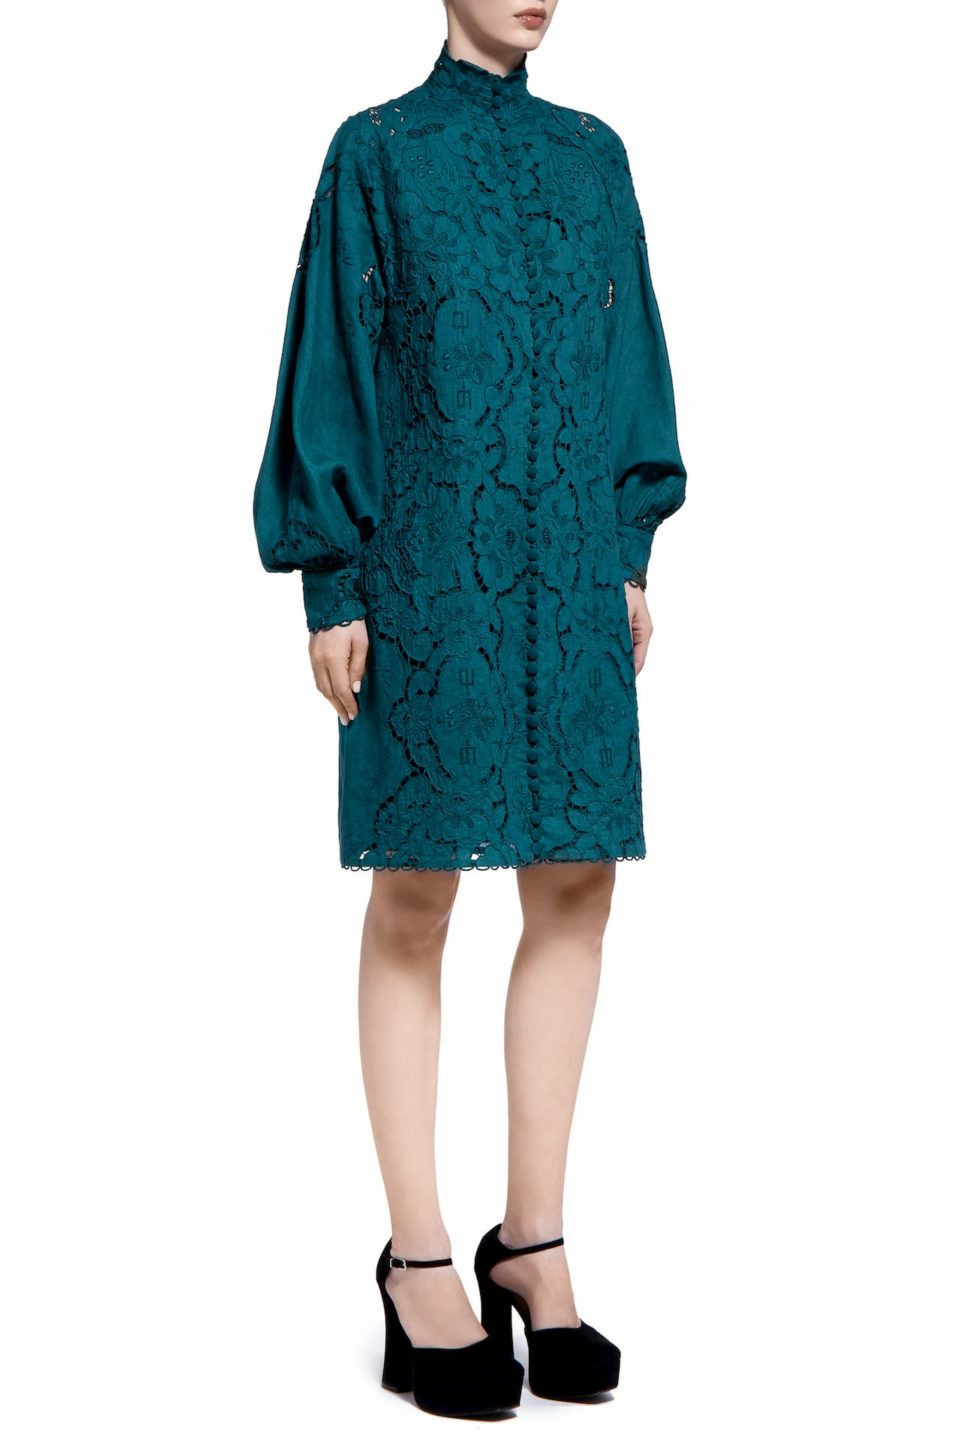 Ralice PR2015 Green Linen Button- Down Shirt Dress with Greek Traditional Reticella Lace Detail